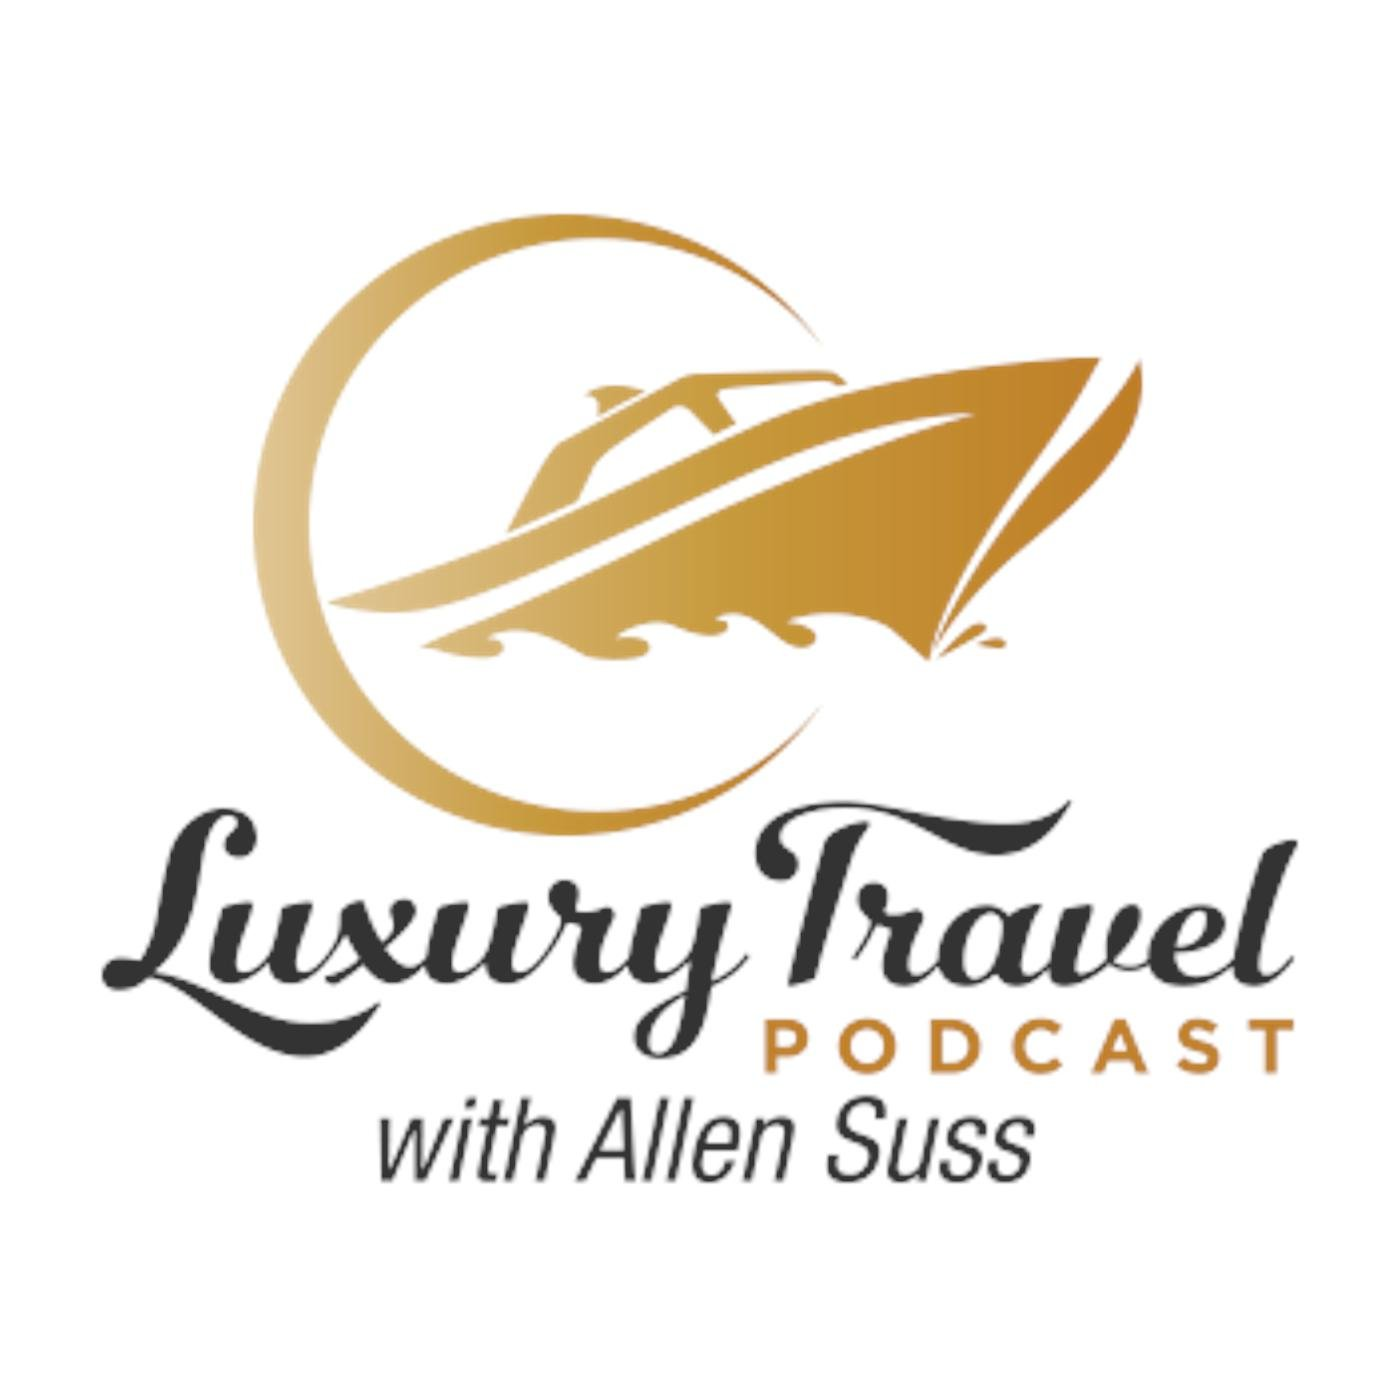 the-luxury-travel-podcast-with-allen-suss-0LbDBFyNz-C.1400x1400